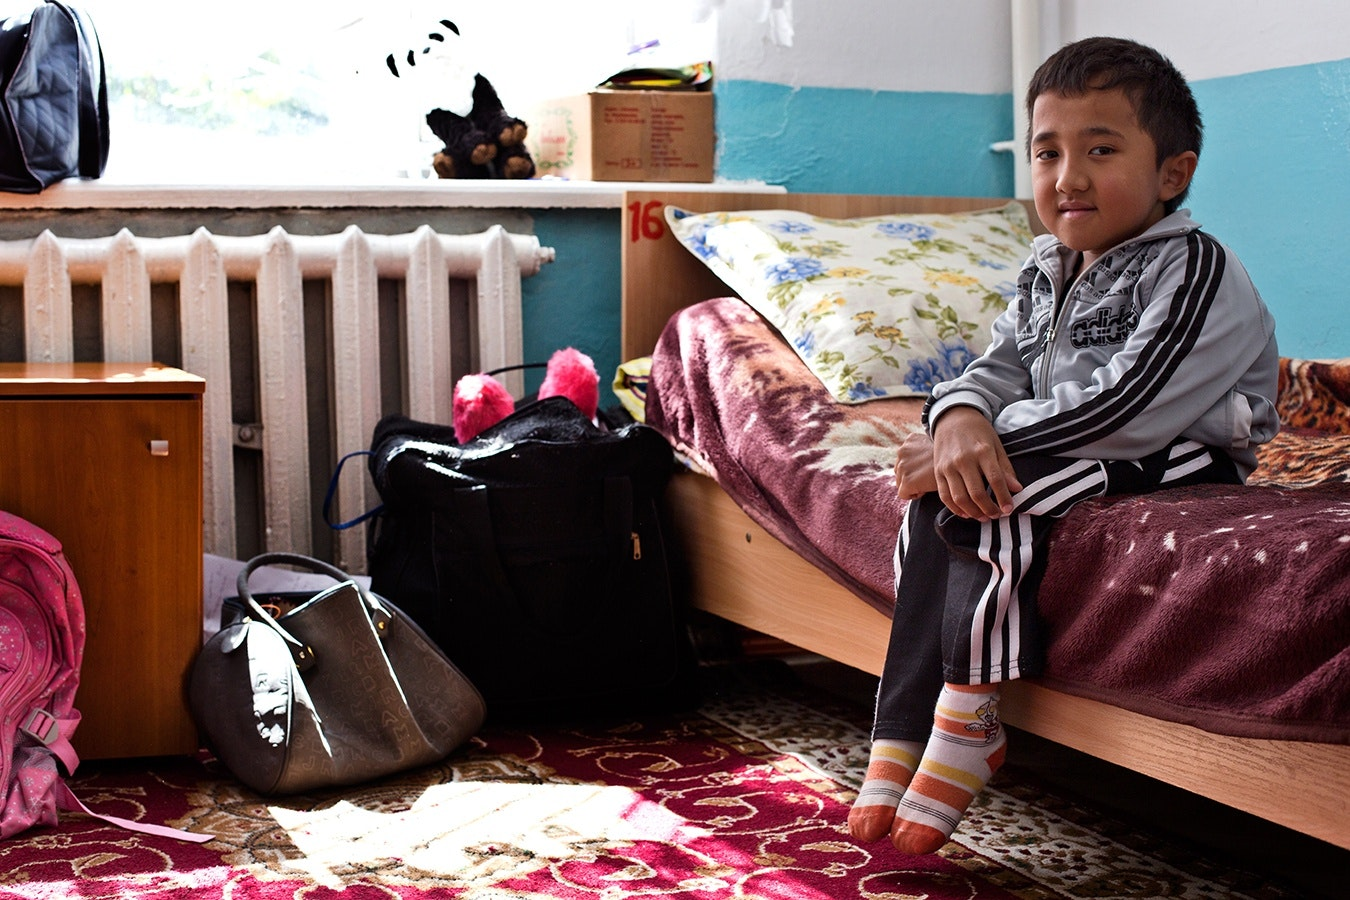 A young boy on his bed